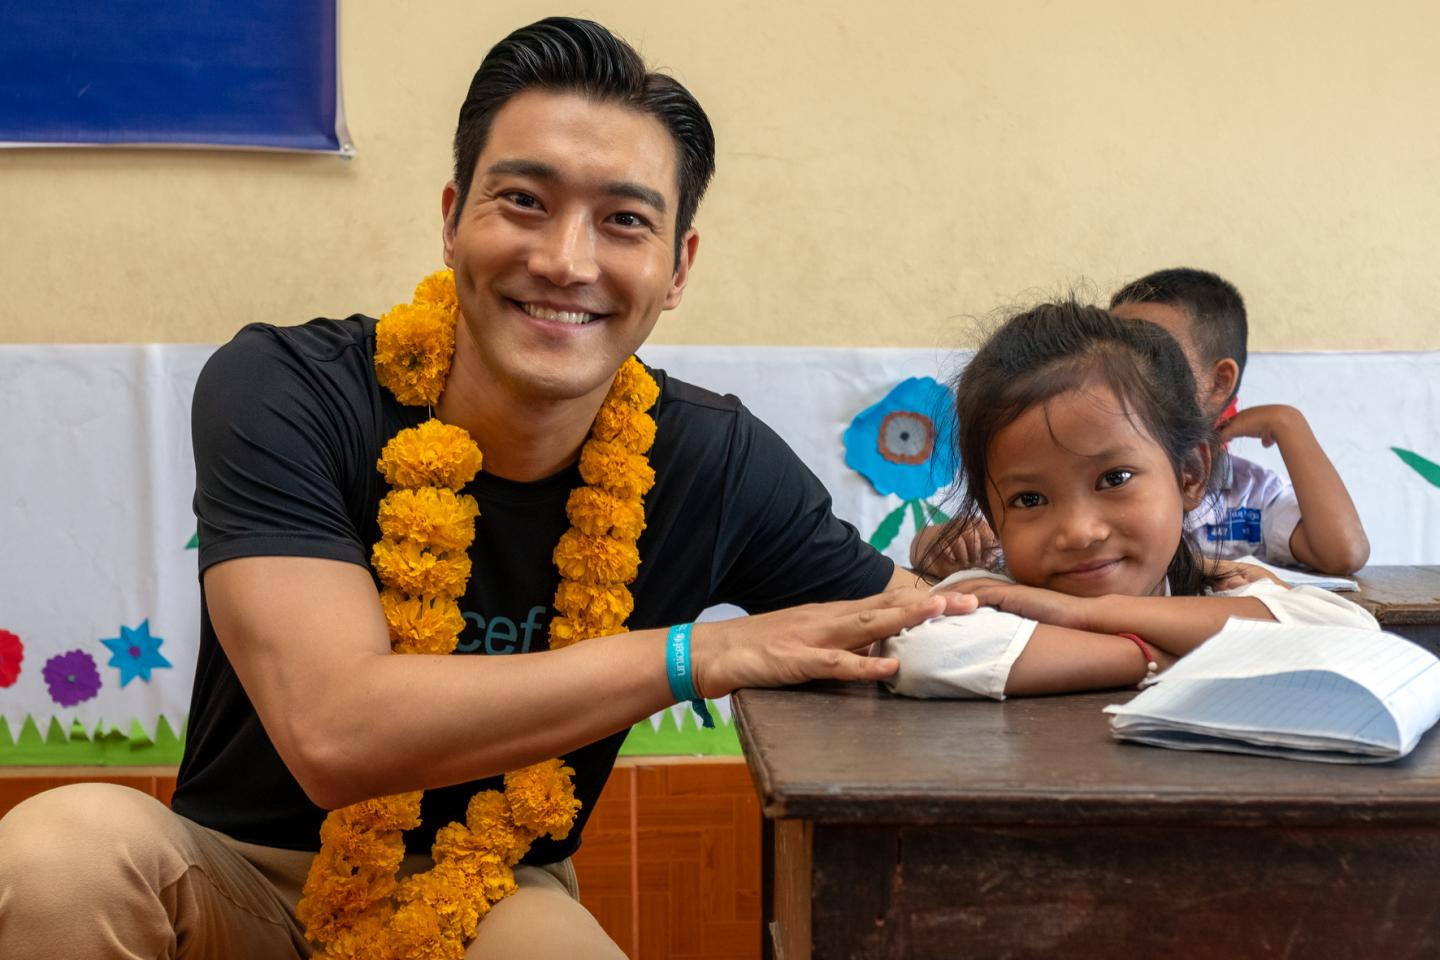 Siwon Choi smiles with a girl in a primary school in Laos